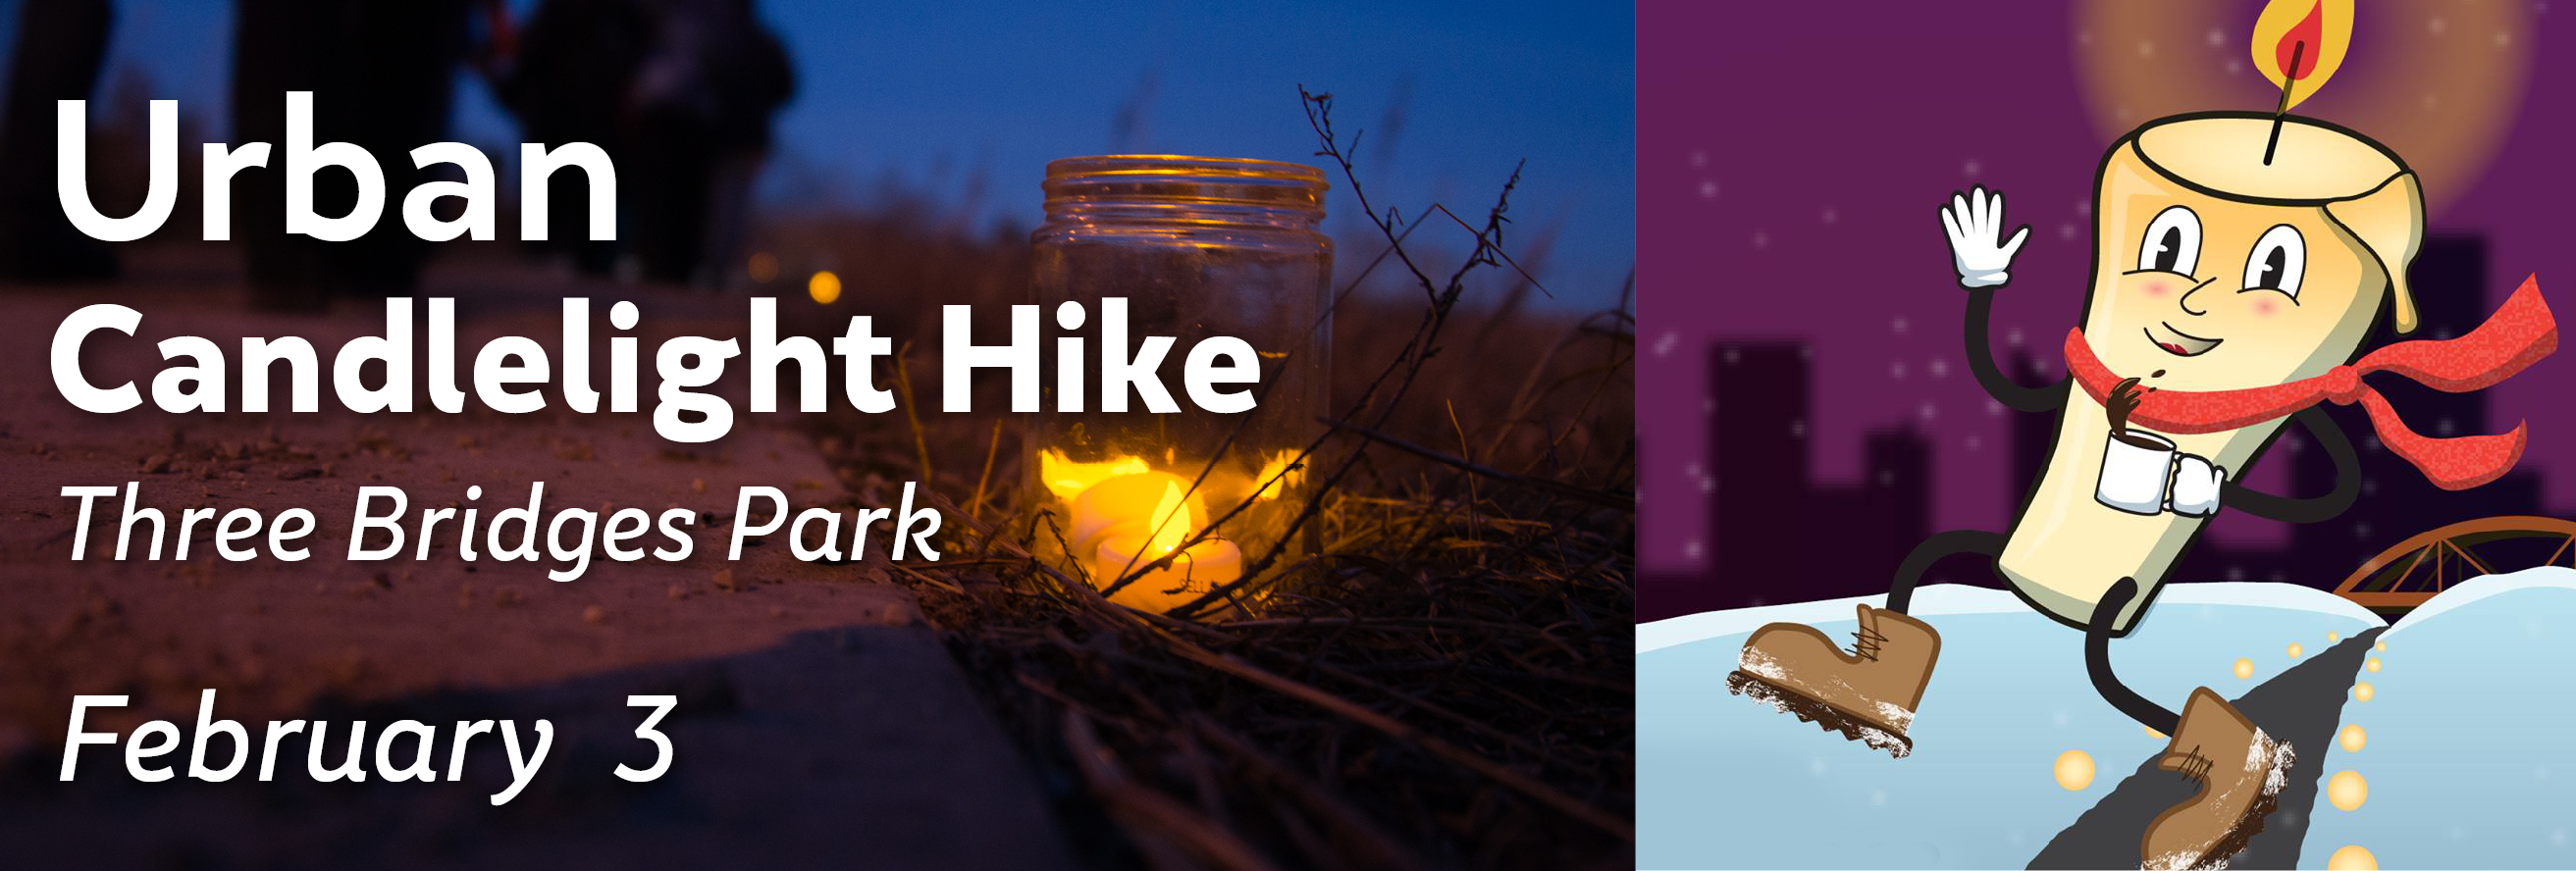 Urban Candlelight Hike